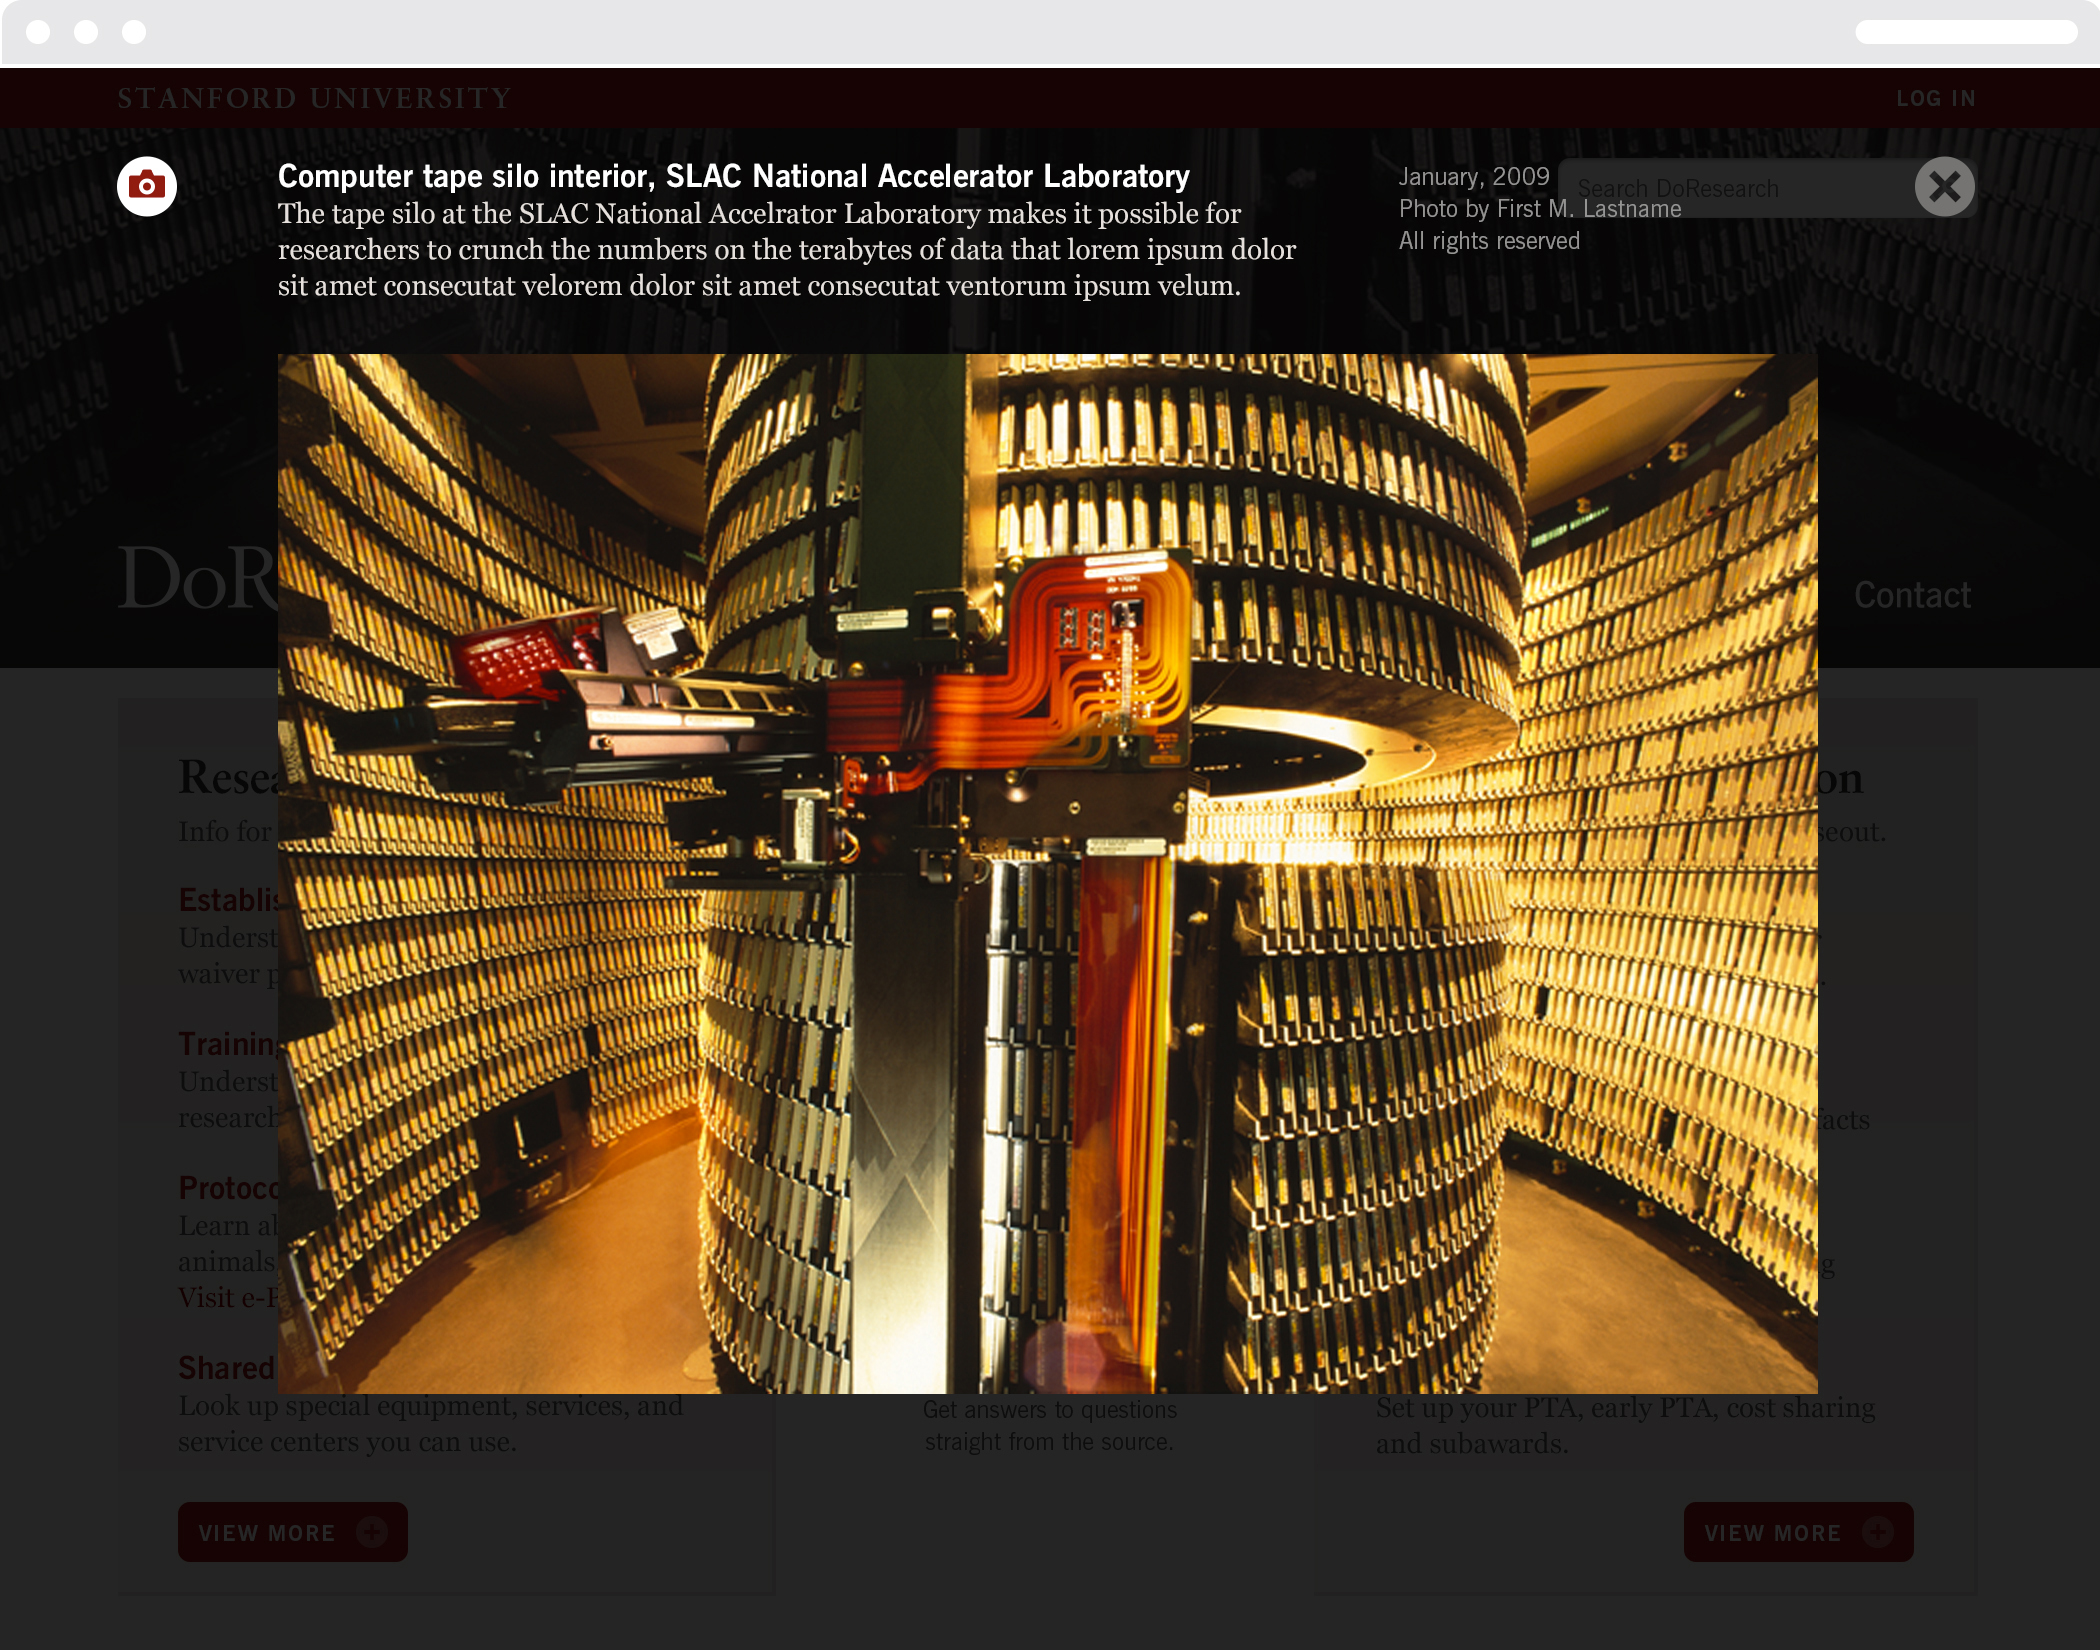 """Stanford University """"Do research"""" web page with a photo of the computer tape silo at the SLAC National Accelerator Laboratory"""